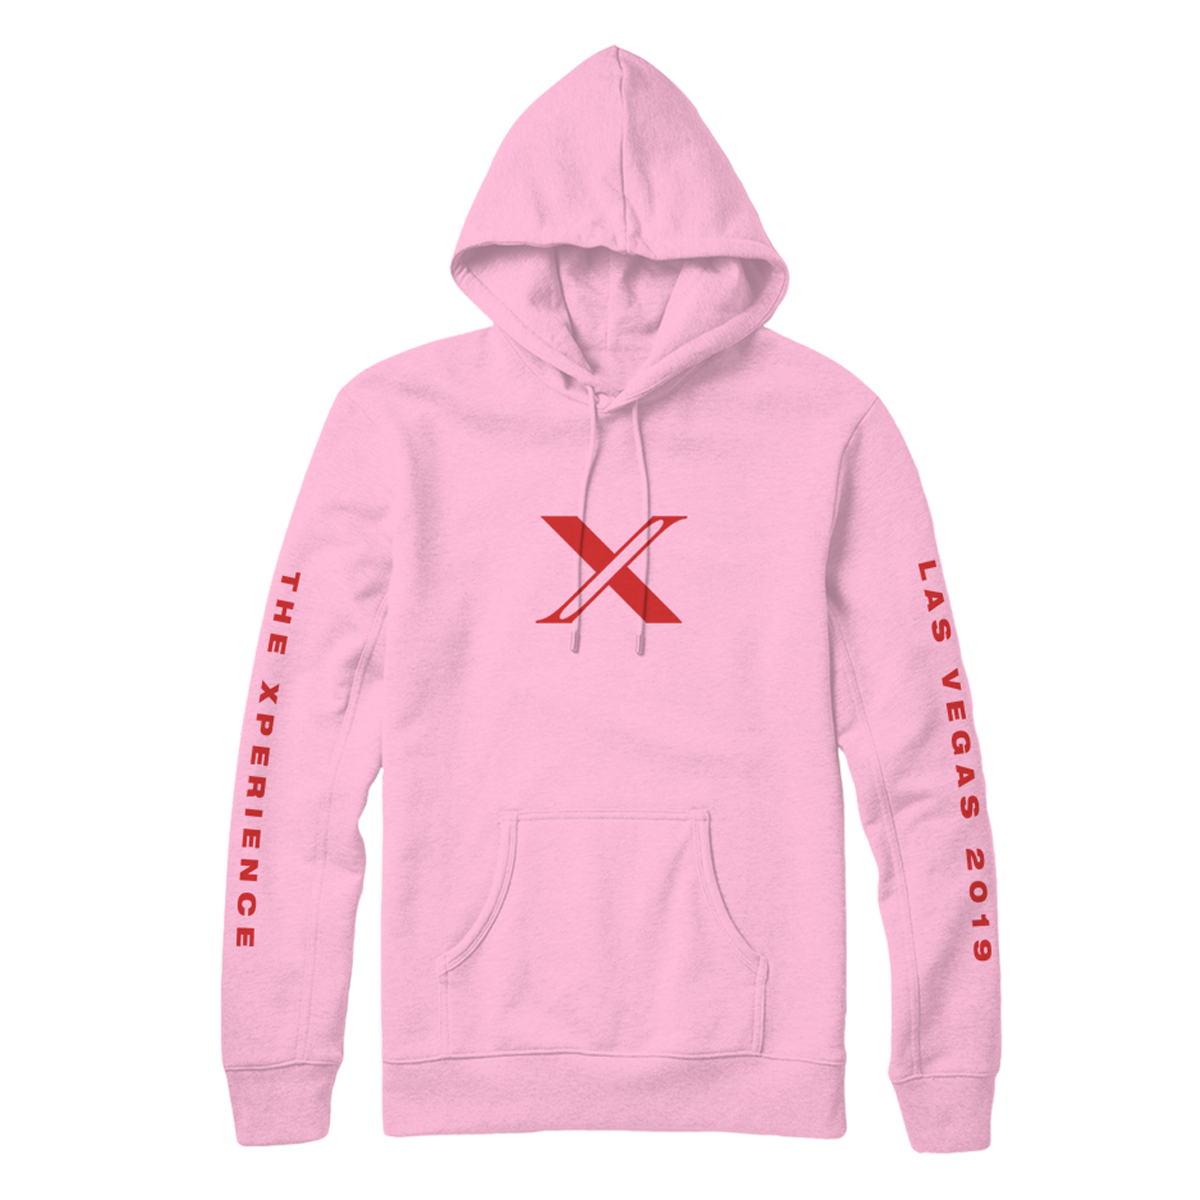 Xperience Pink Hoodie - Christina Aguilera